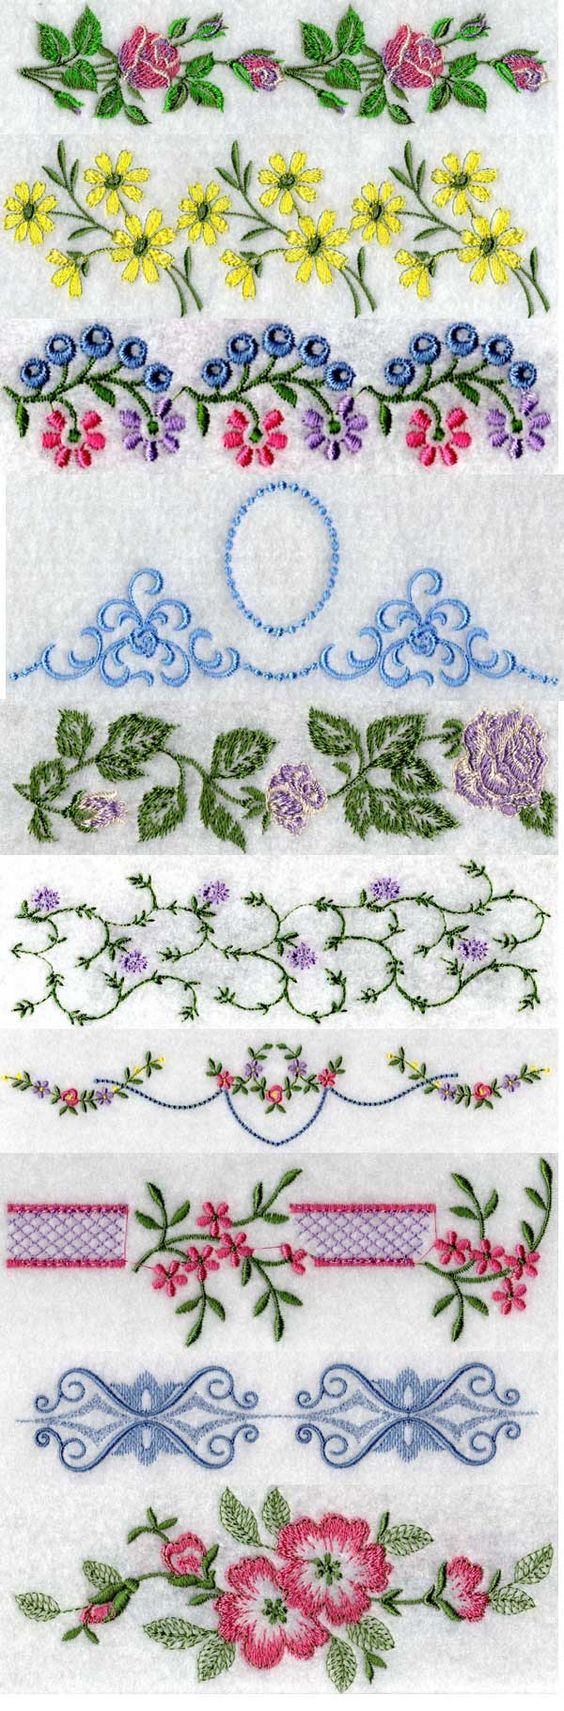 Linens embroidery machine design details designs by sick